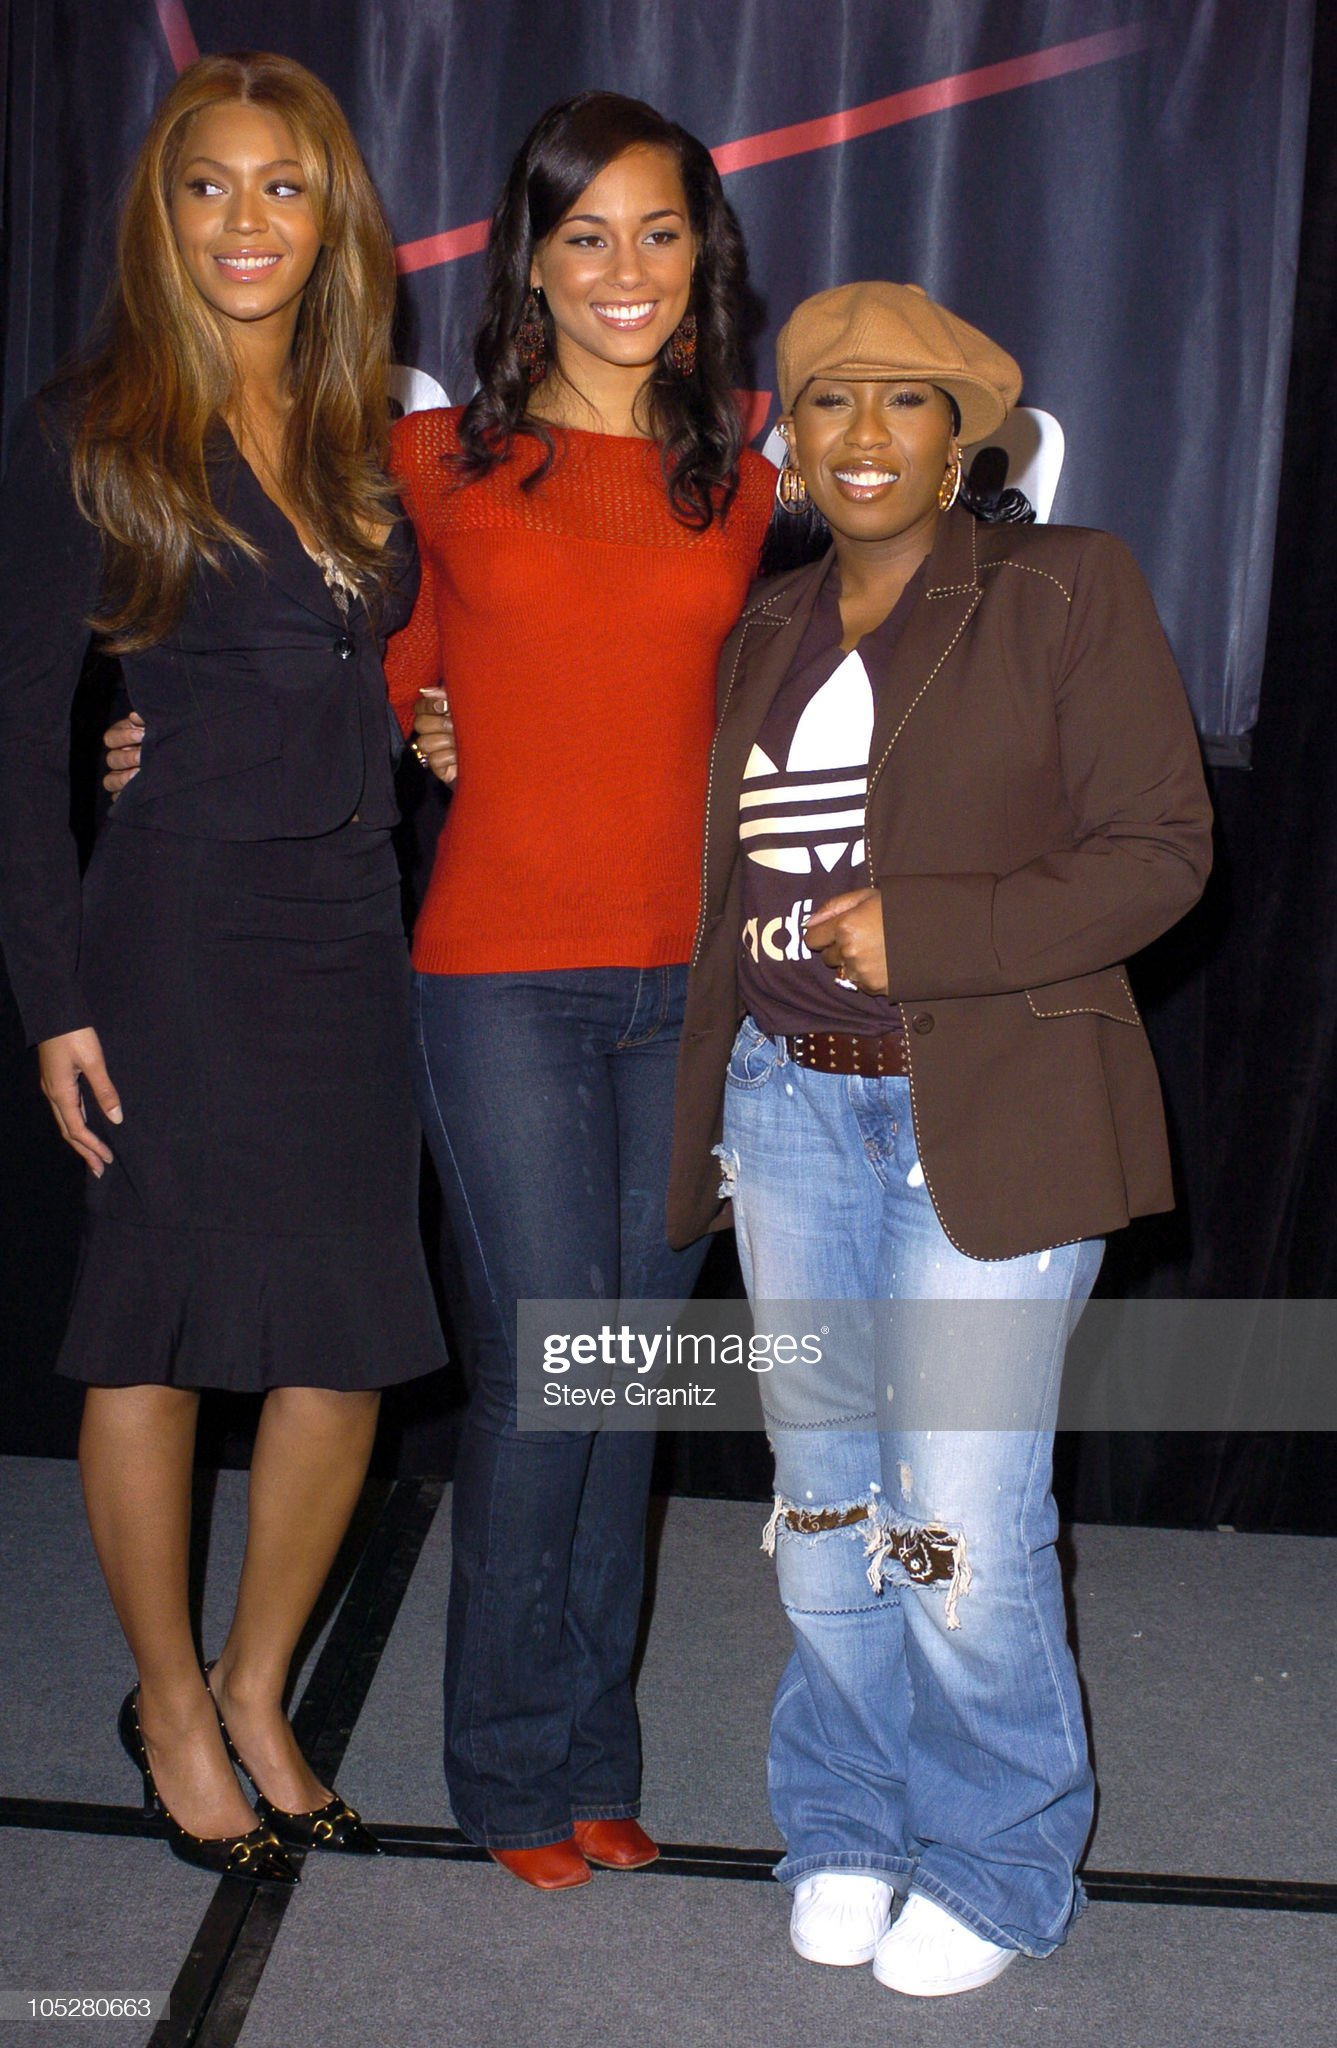 ¿Cuánto mide Alicia Keys? - Altura - Real height Beyonce-and-alicia-keys-and-missy-elliott-during-beyonce-alicia-keys-picture-id105280663?s=2048x2048